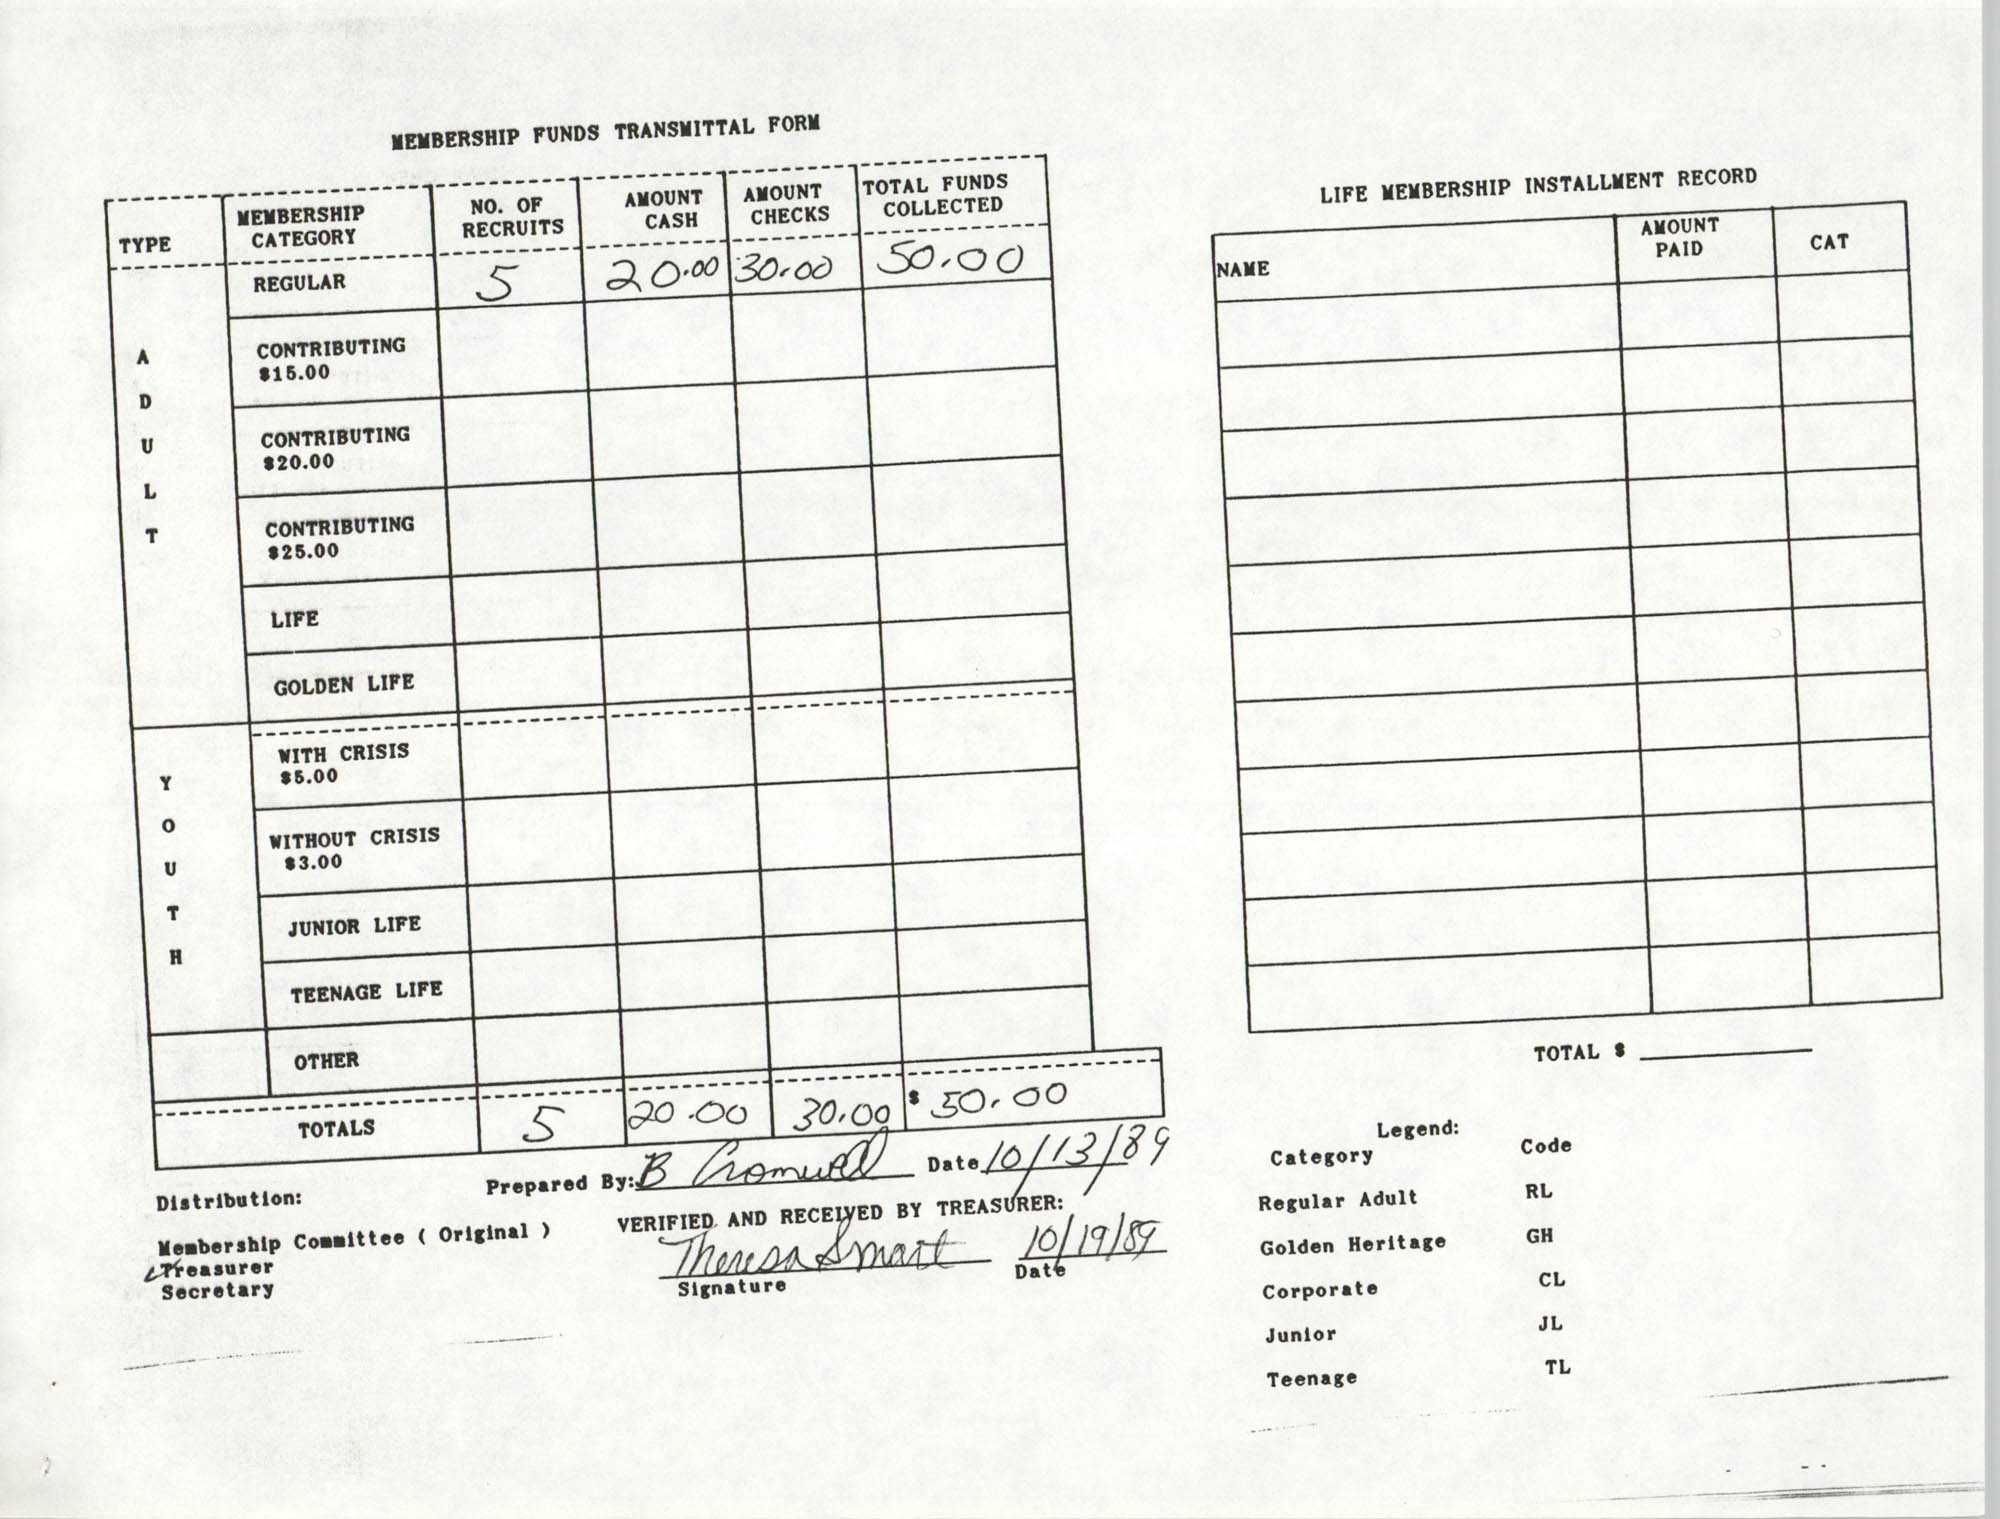 Charleston Branch of the NAACP Funds Transmittal Forms, October 1989, Page 4